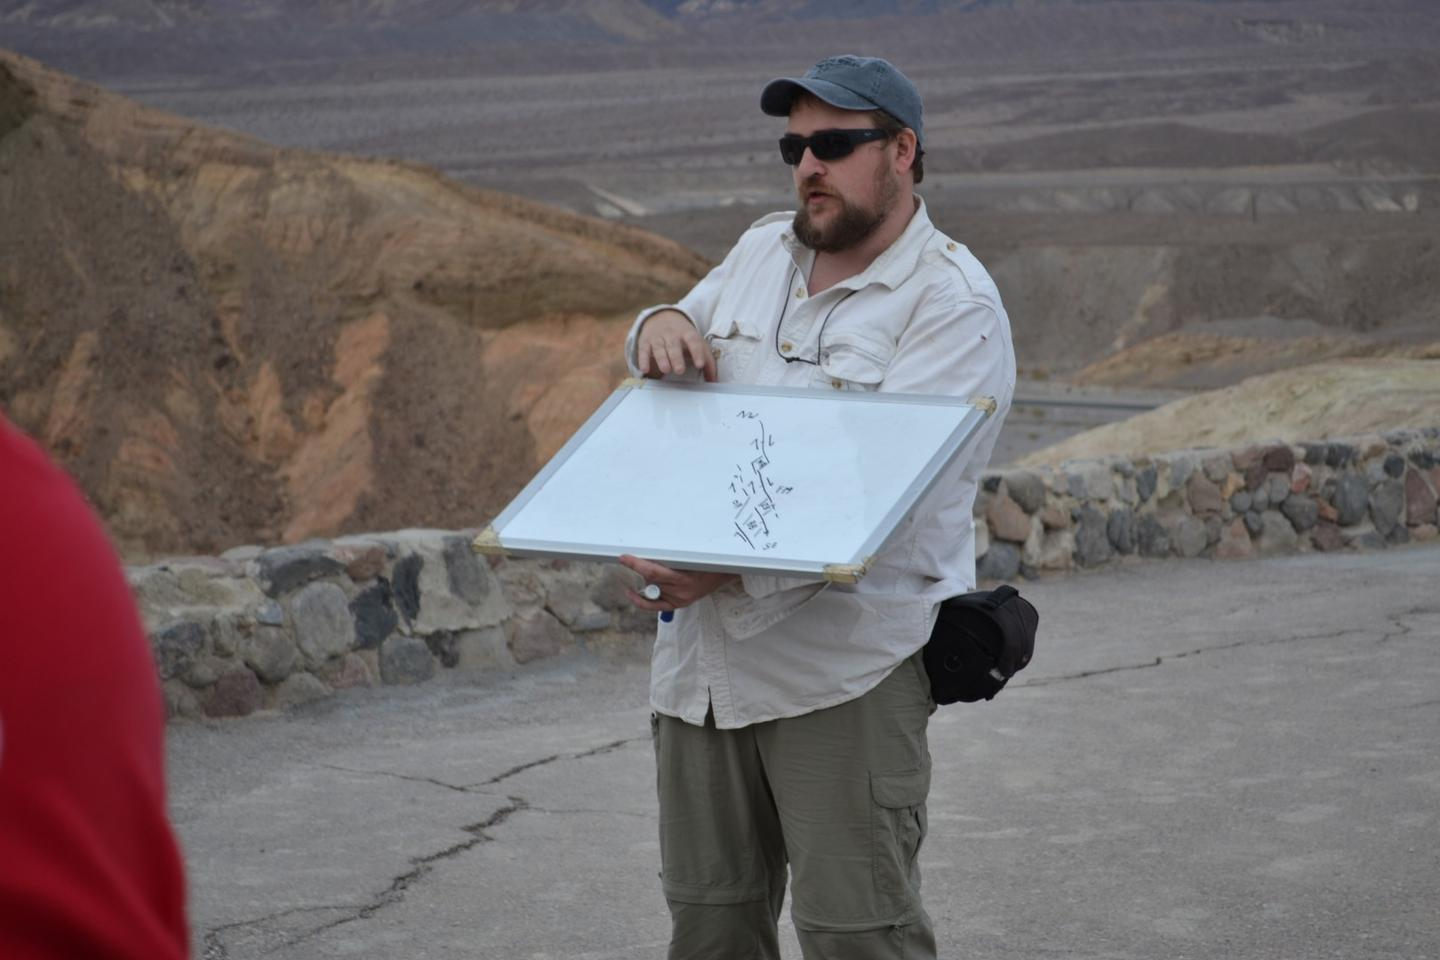 WVU geologist Graham Andrews, part of the team that discovered the Namibian drumlins